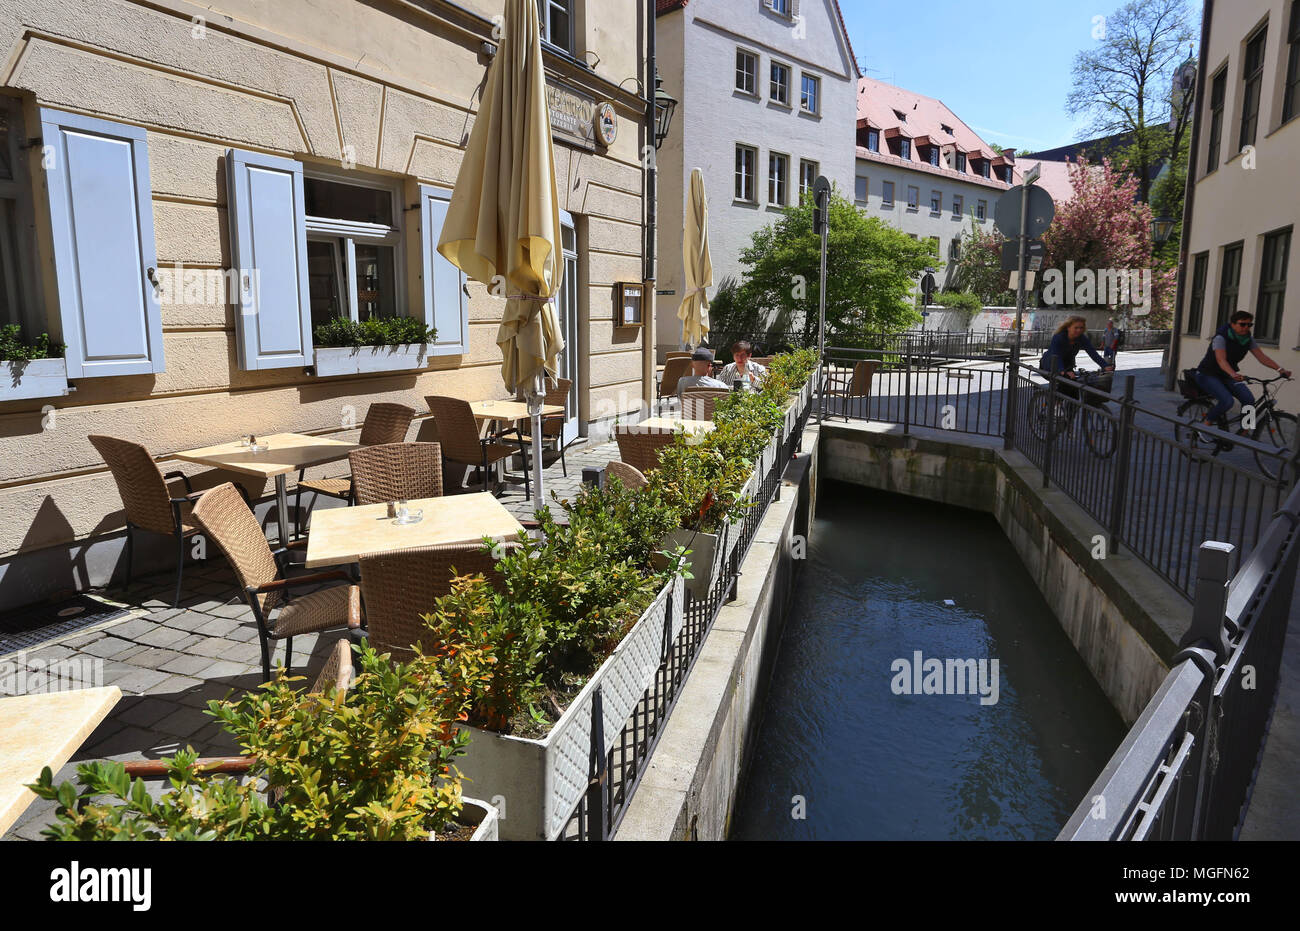 27 April 2018, Germany, Augsburg: A canal with water from the Lechs flowing through the old town. The city of Augsburg has applied as 'Wasserbau und Wasserkraft, Trinkwasser und Brunnenkunst in Augsburg' (lit. hydarulic engineering, hydropower, drinking water and fountain art) for admission to the UNESCO world heritage list. Photo: Karl-Josef Hildenbrand/dpa Stock Photo